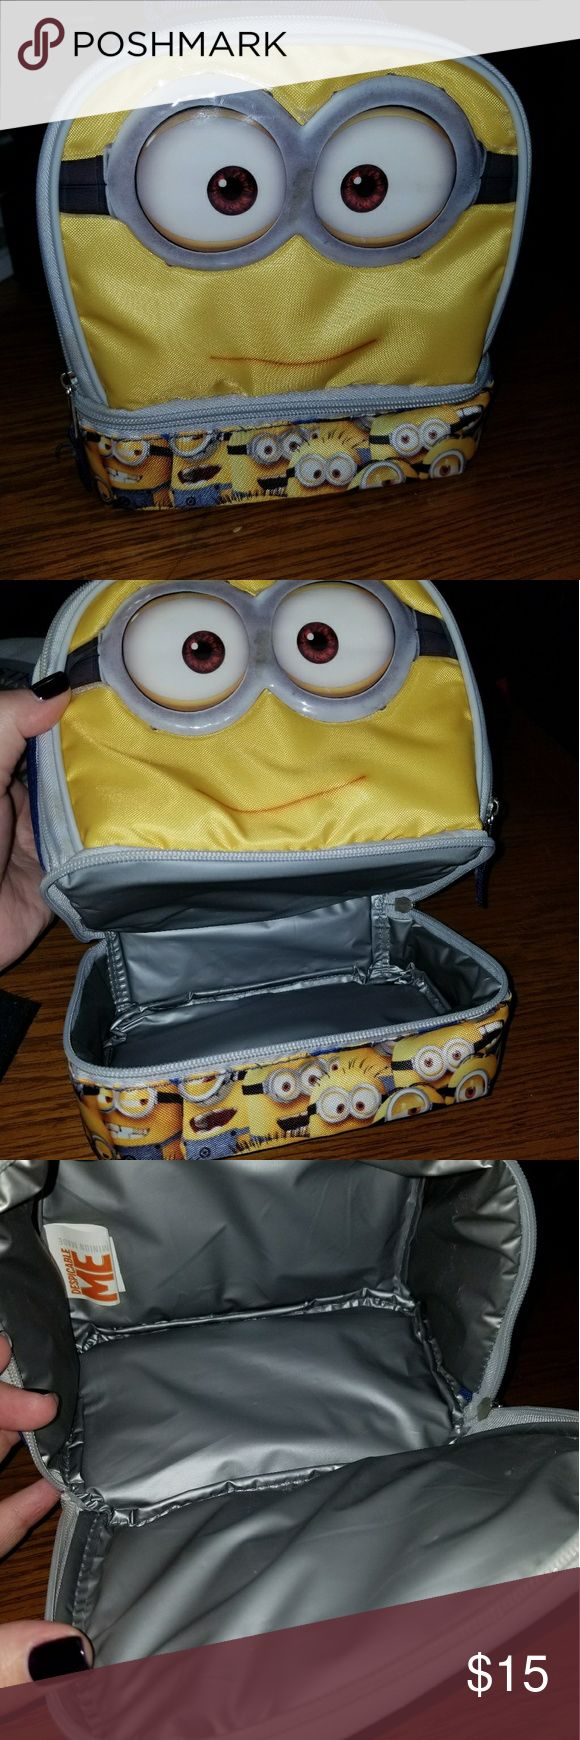 Minion Lunch Box Great condition, like new Minion Other